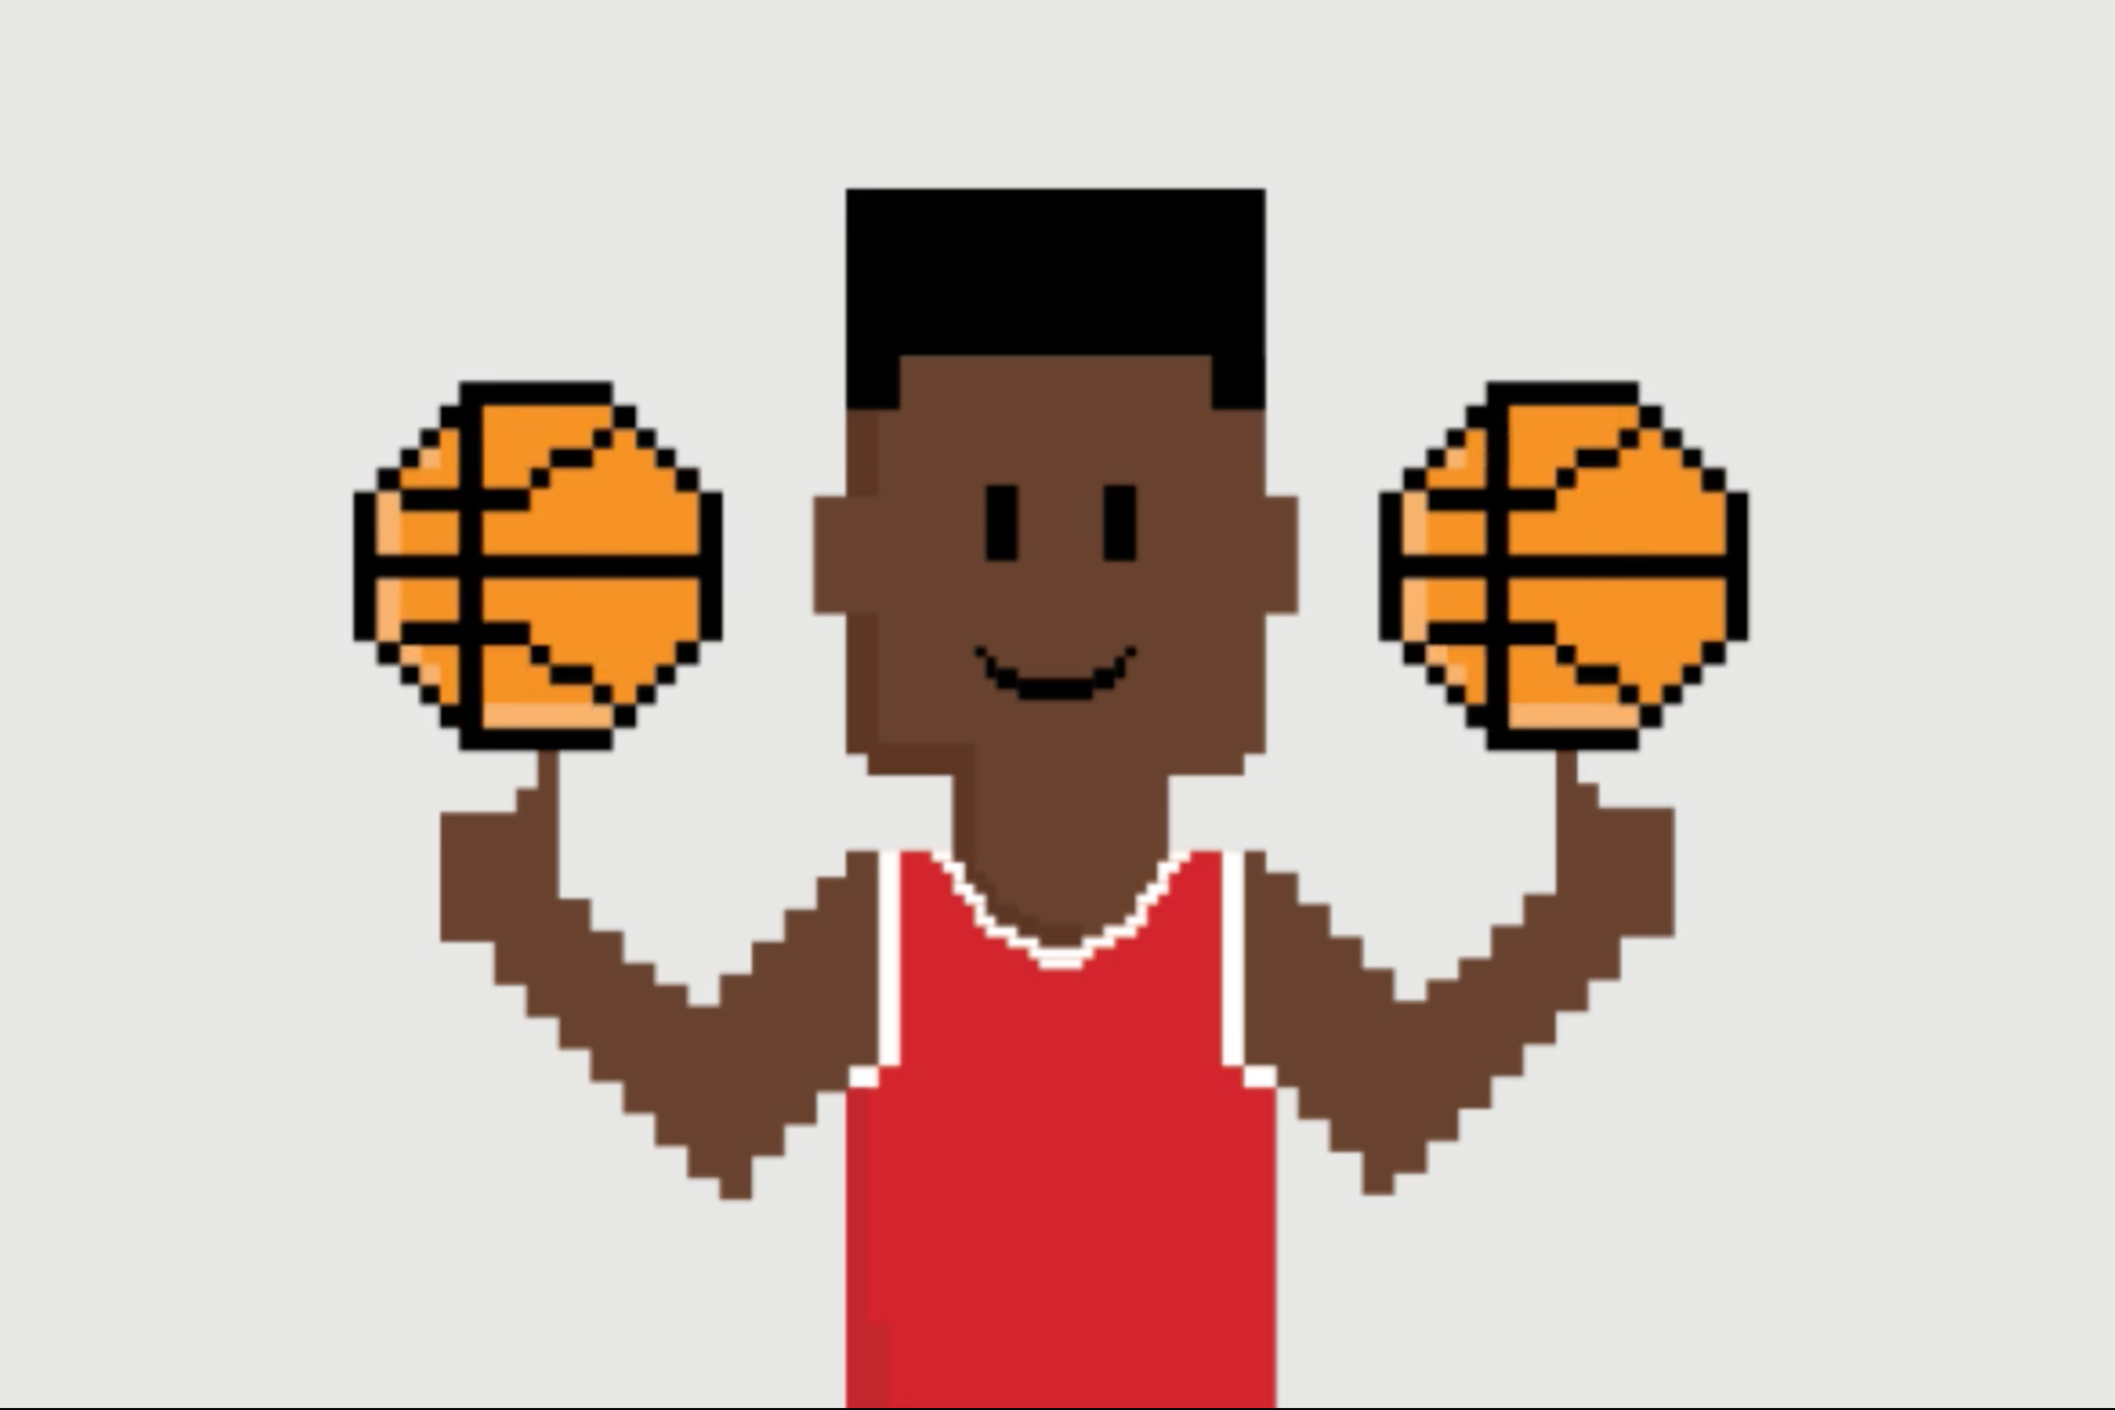 Verizon: Basket Blitz  Custom 8-bit video game created on Tumblr and then built IRL in partnership with the Lakers.